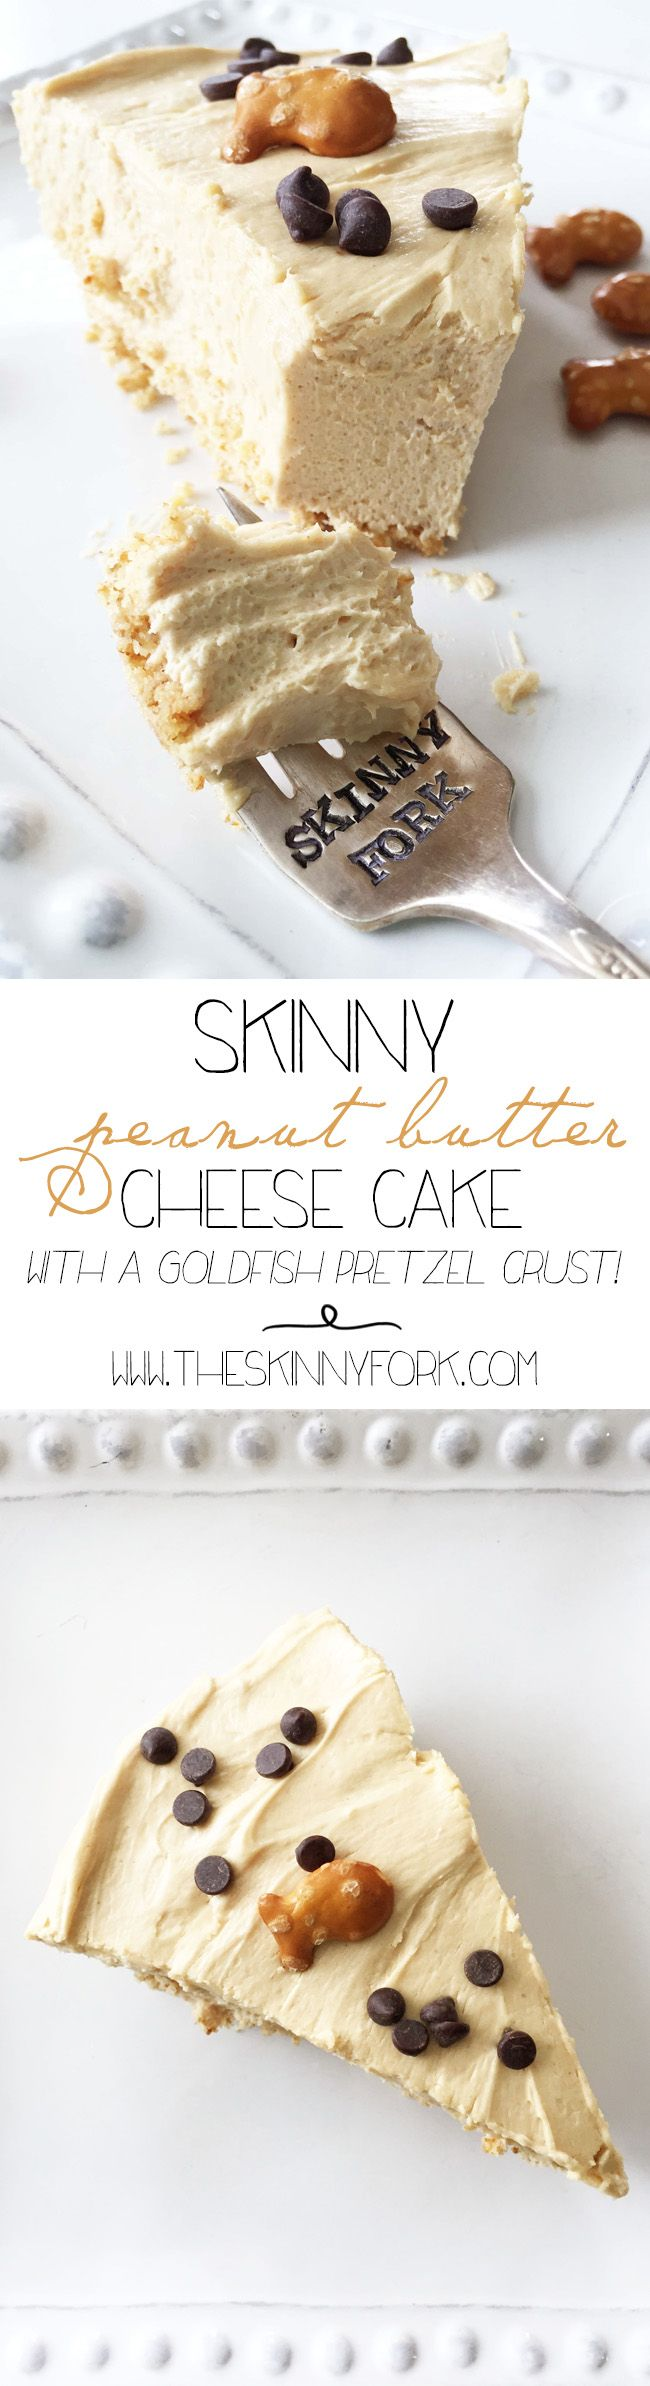 Skinny Peanut Butter Cheesecake - A lighter peanut butter cheesecake with a pretzel crust! ??